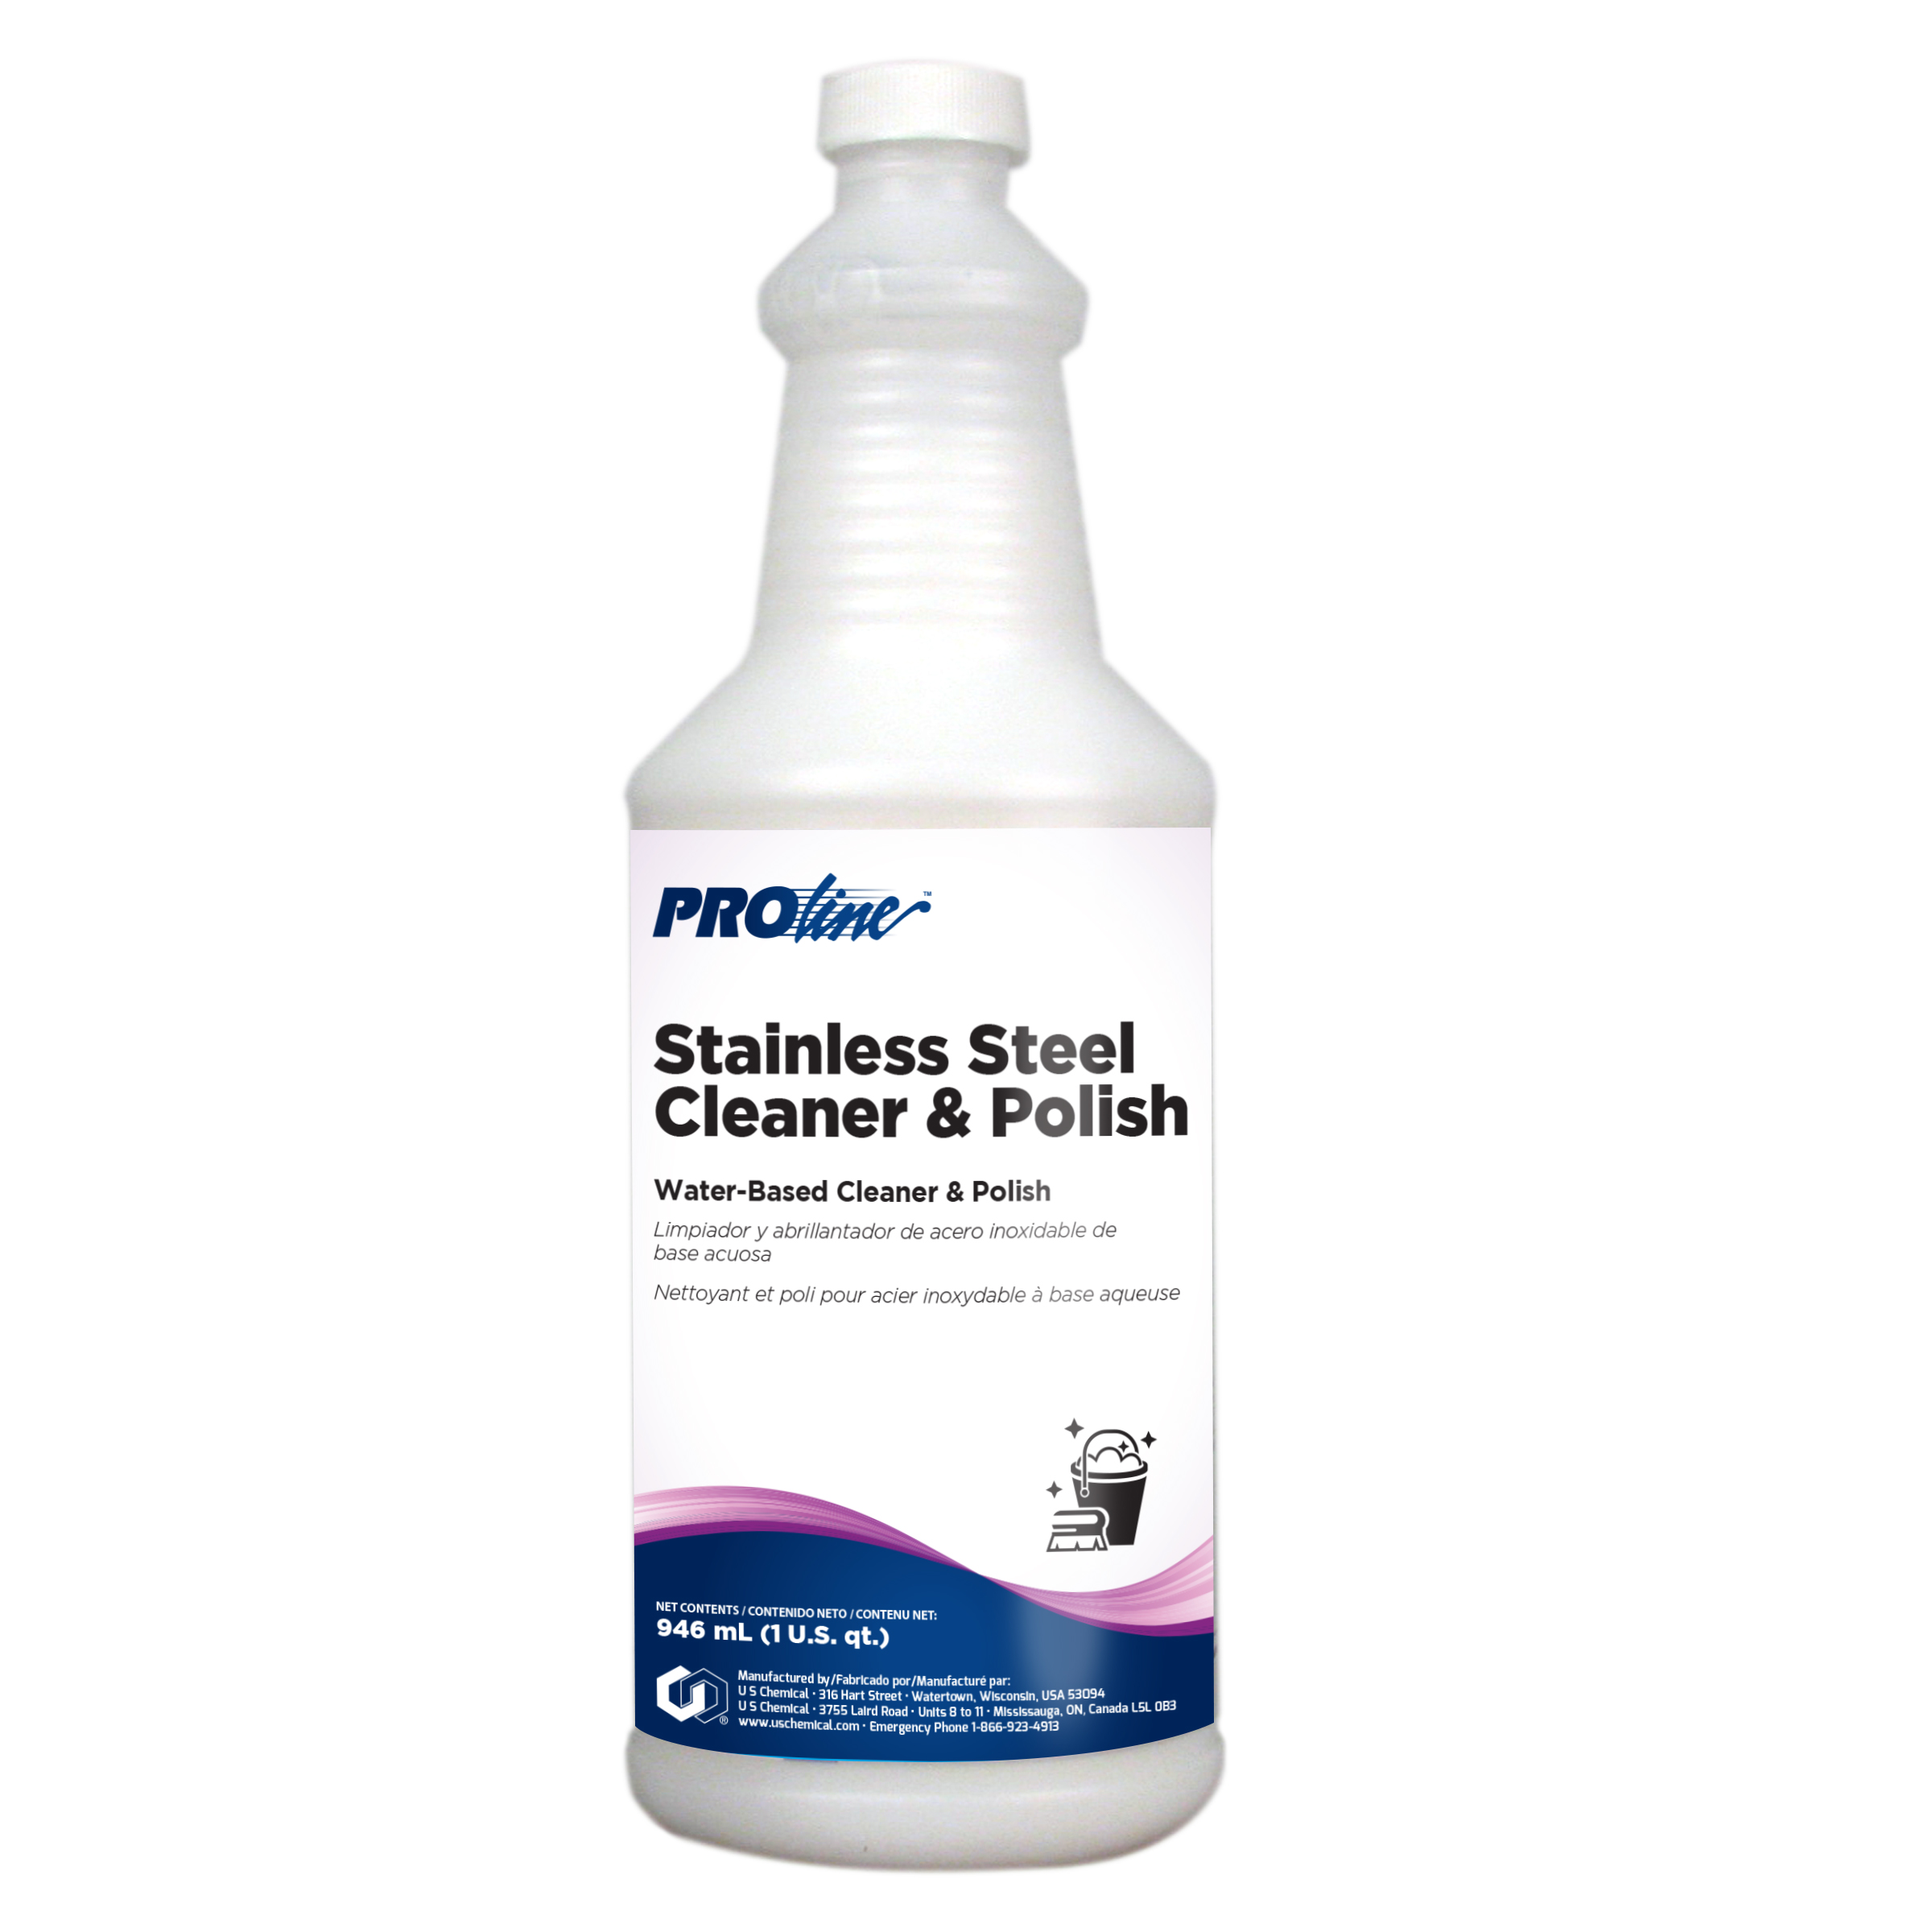 101100128_STAINLESS_STEEL_CLEANER_POLISH_1QT